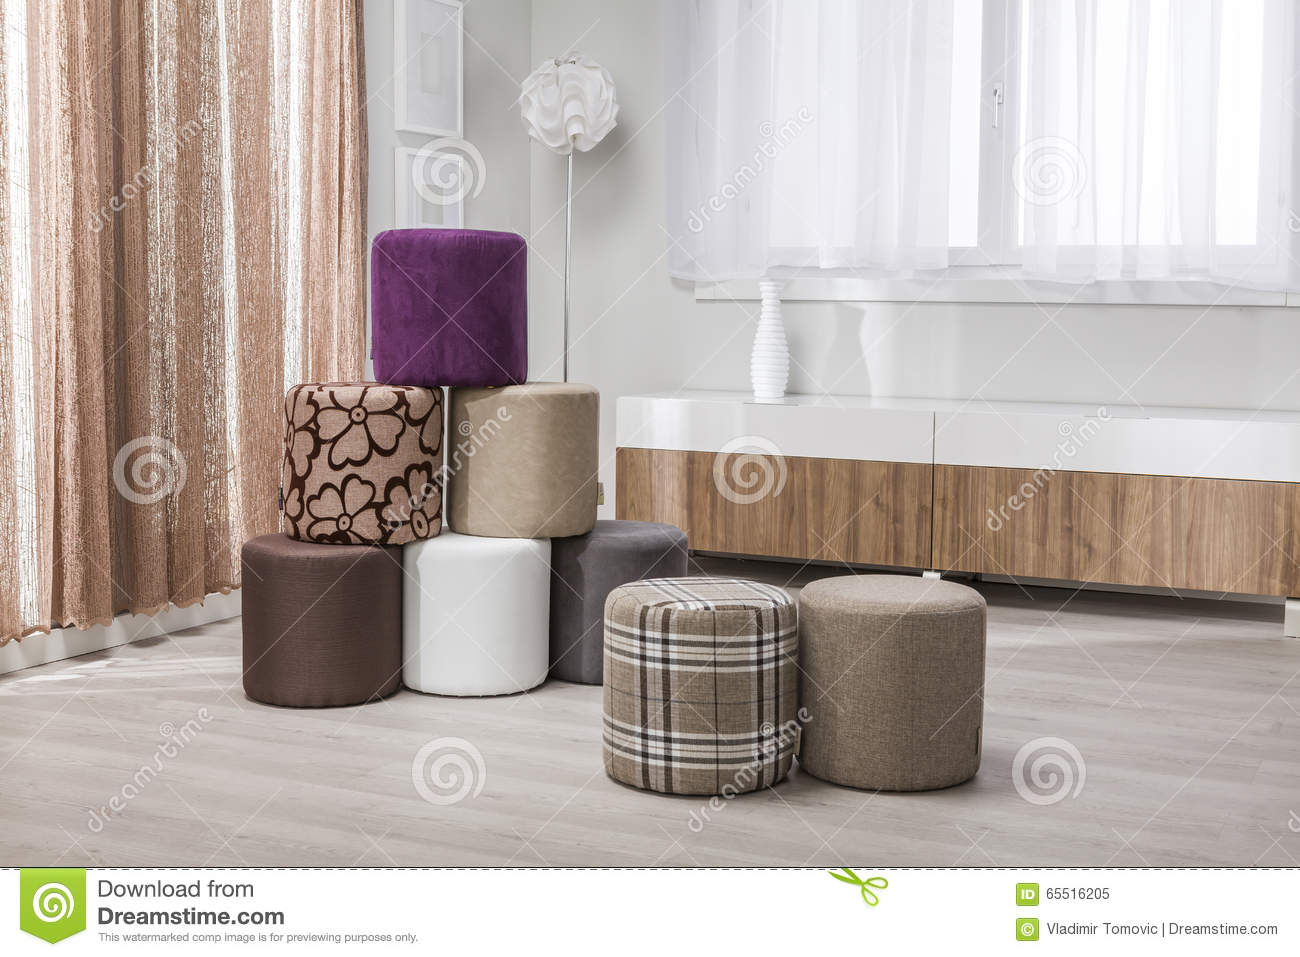 Tabouret - Stool In A Modern Interior - Living Room Stock Photo ...